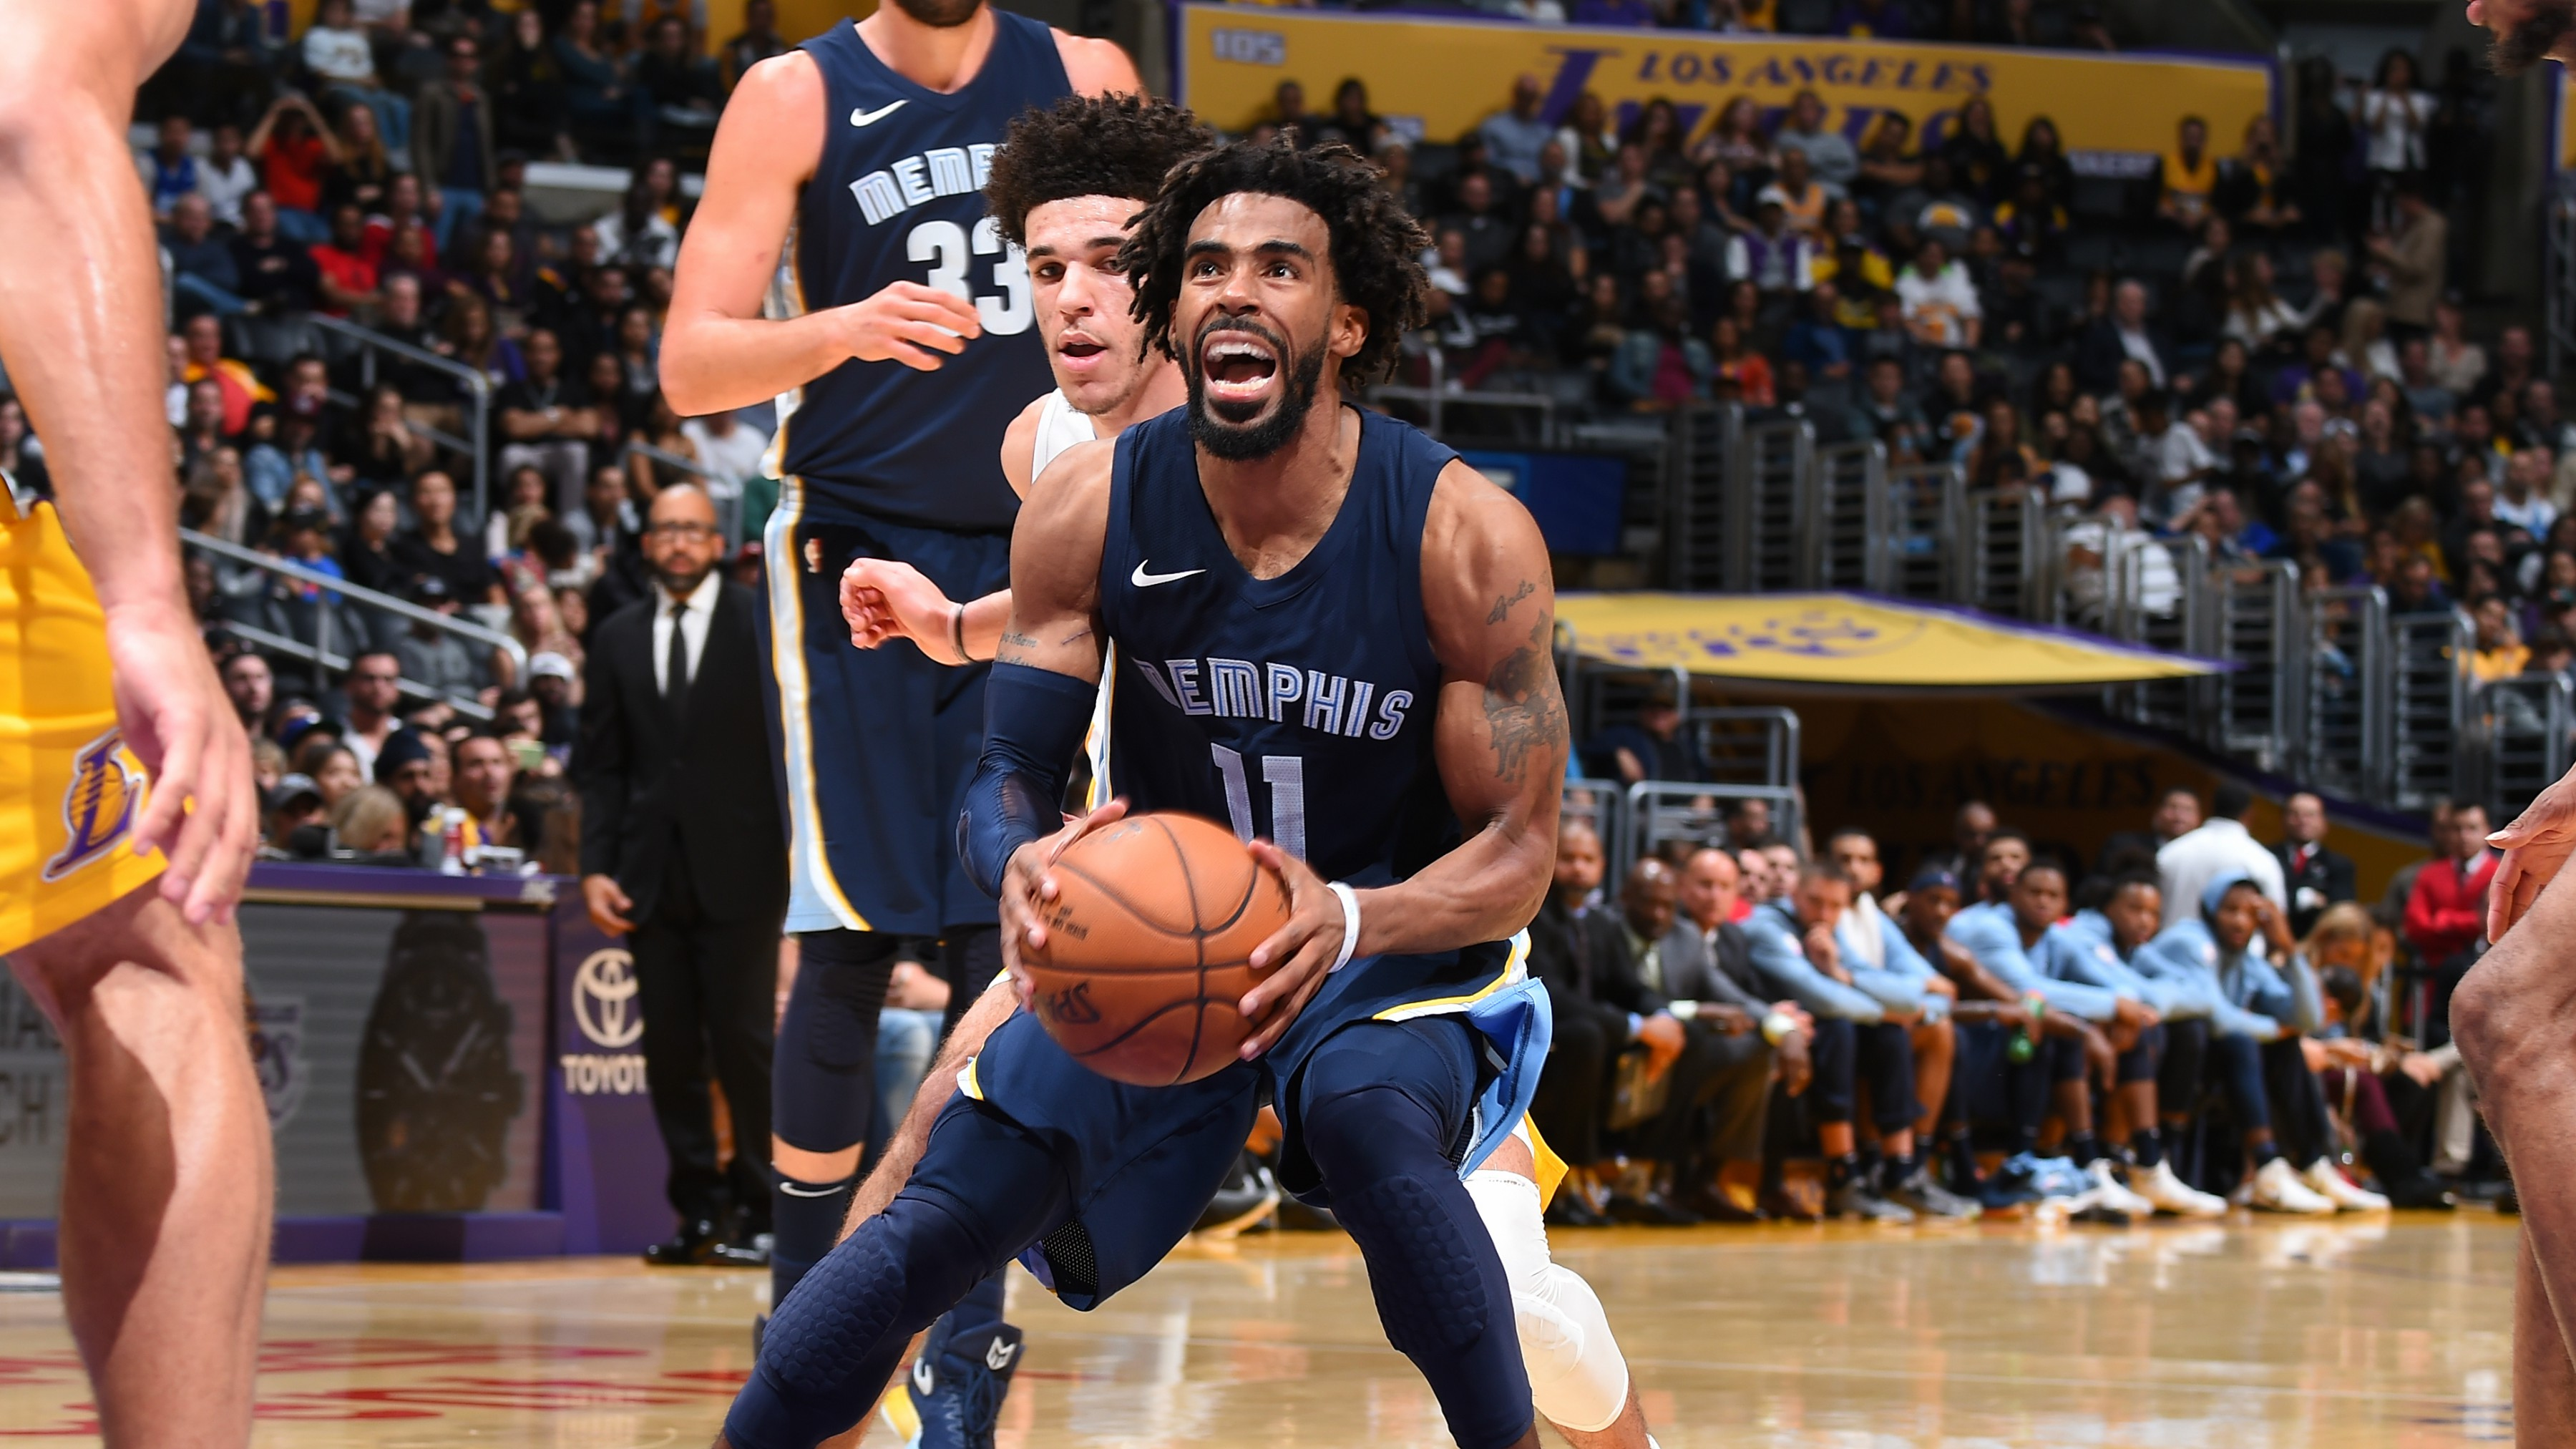 Mike-conley-achilles-injury